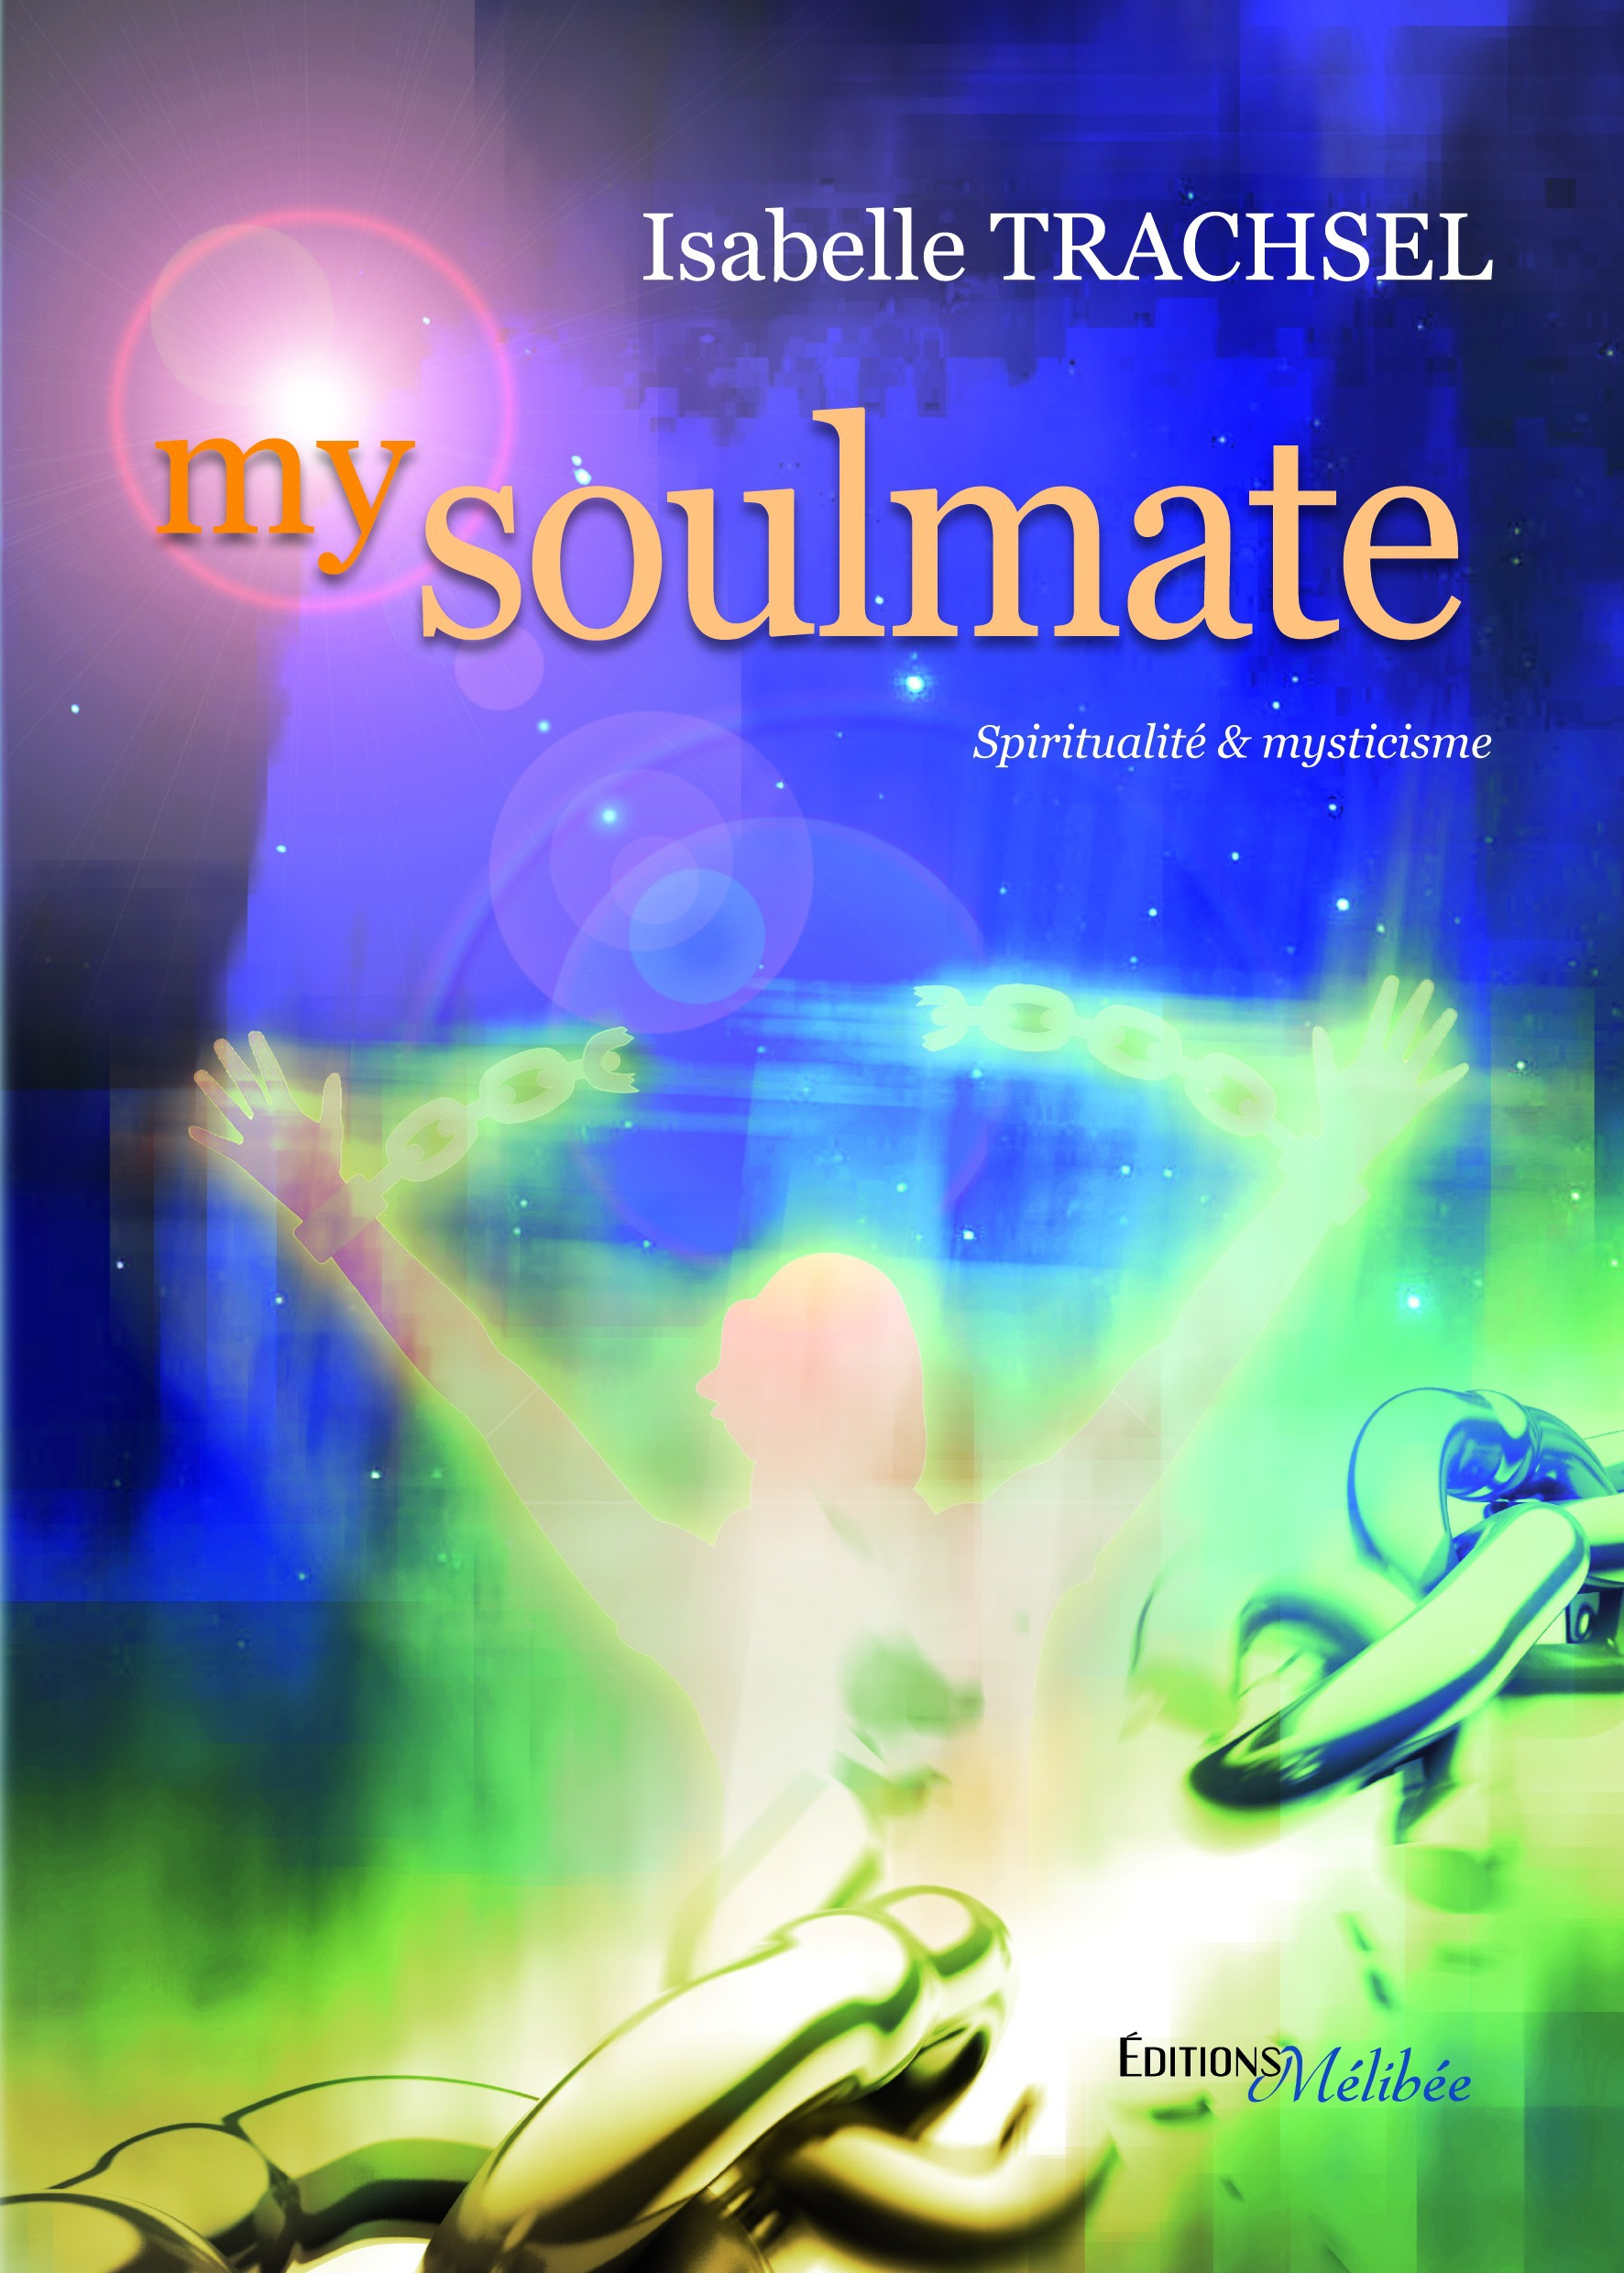 Isabelle Trachsel My soulmate ; spiritualité & mysticisme